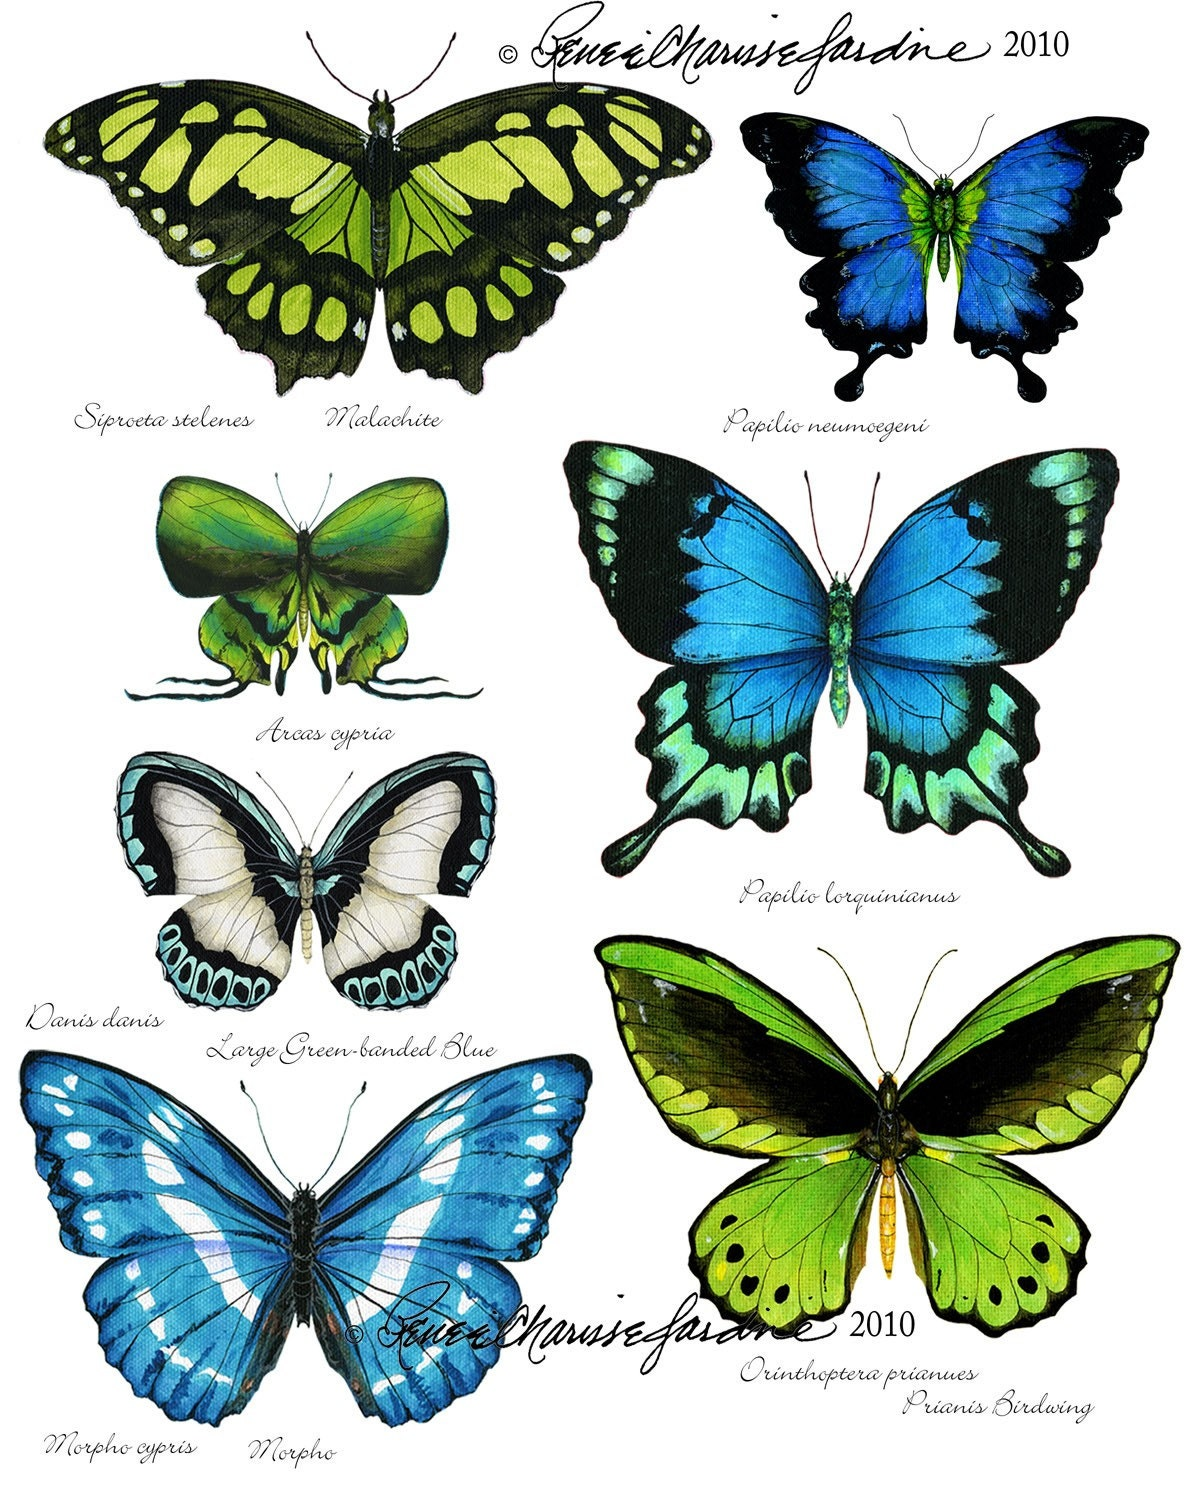 a study of butterflies A study on the diversity of butterflies - free download as word doc (doc), pdf file (pdf), text file (txt) or read online for free.